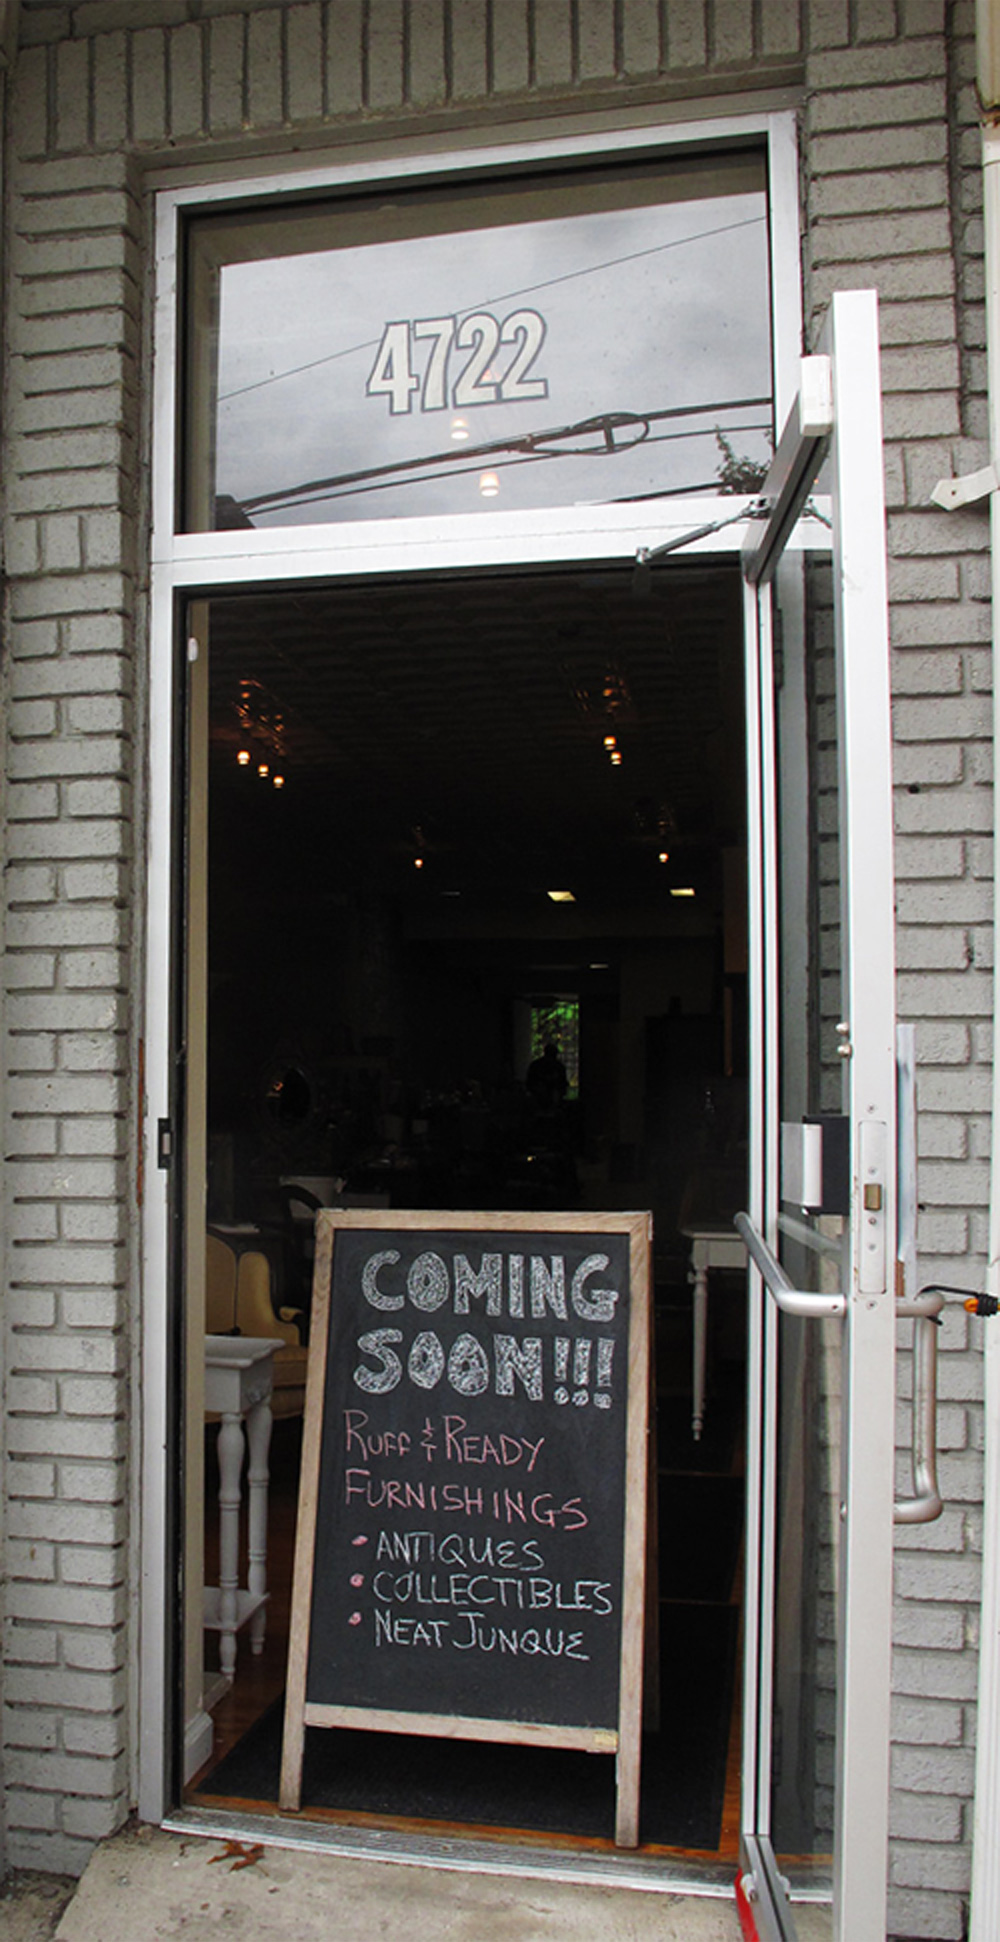 Exciting News: Ruff and Ready Open for Business